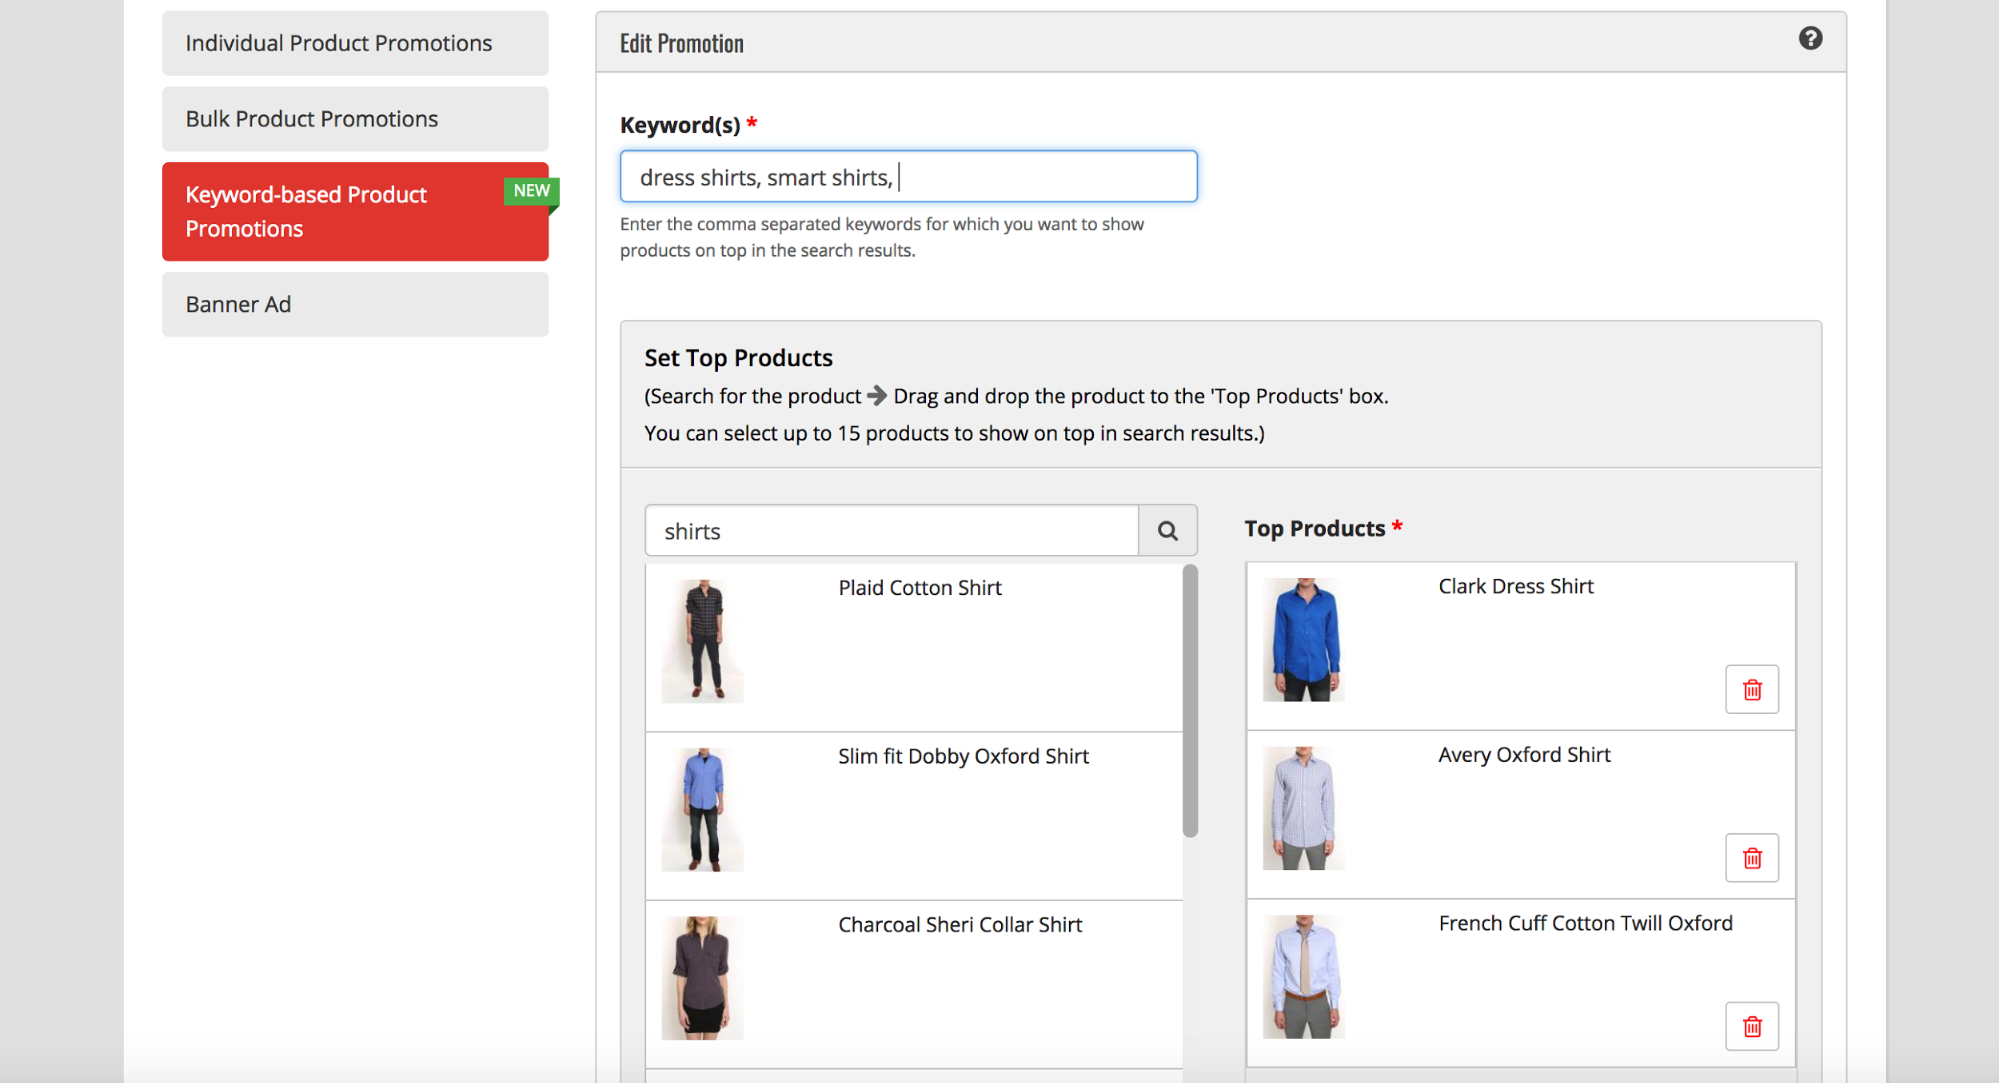 An ecommerce search solution should enable merchandising